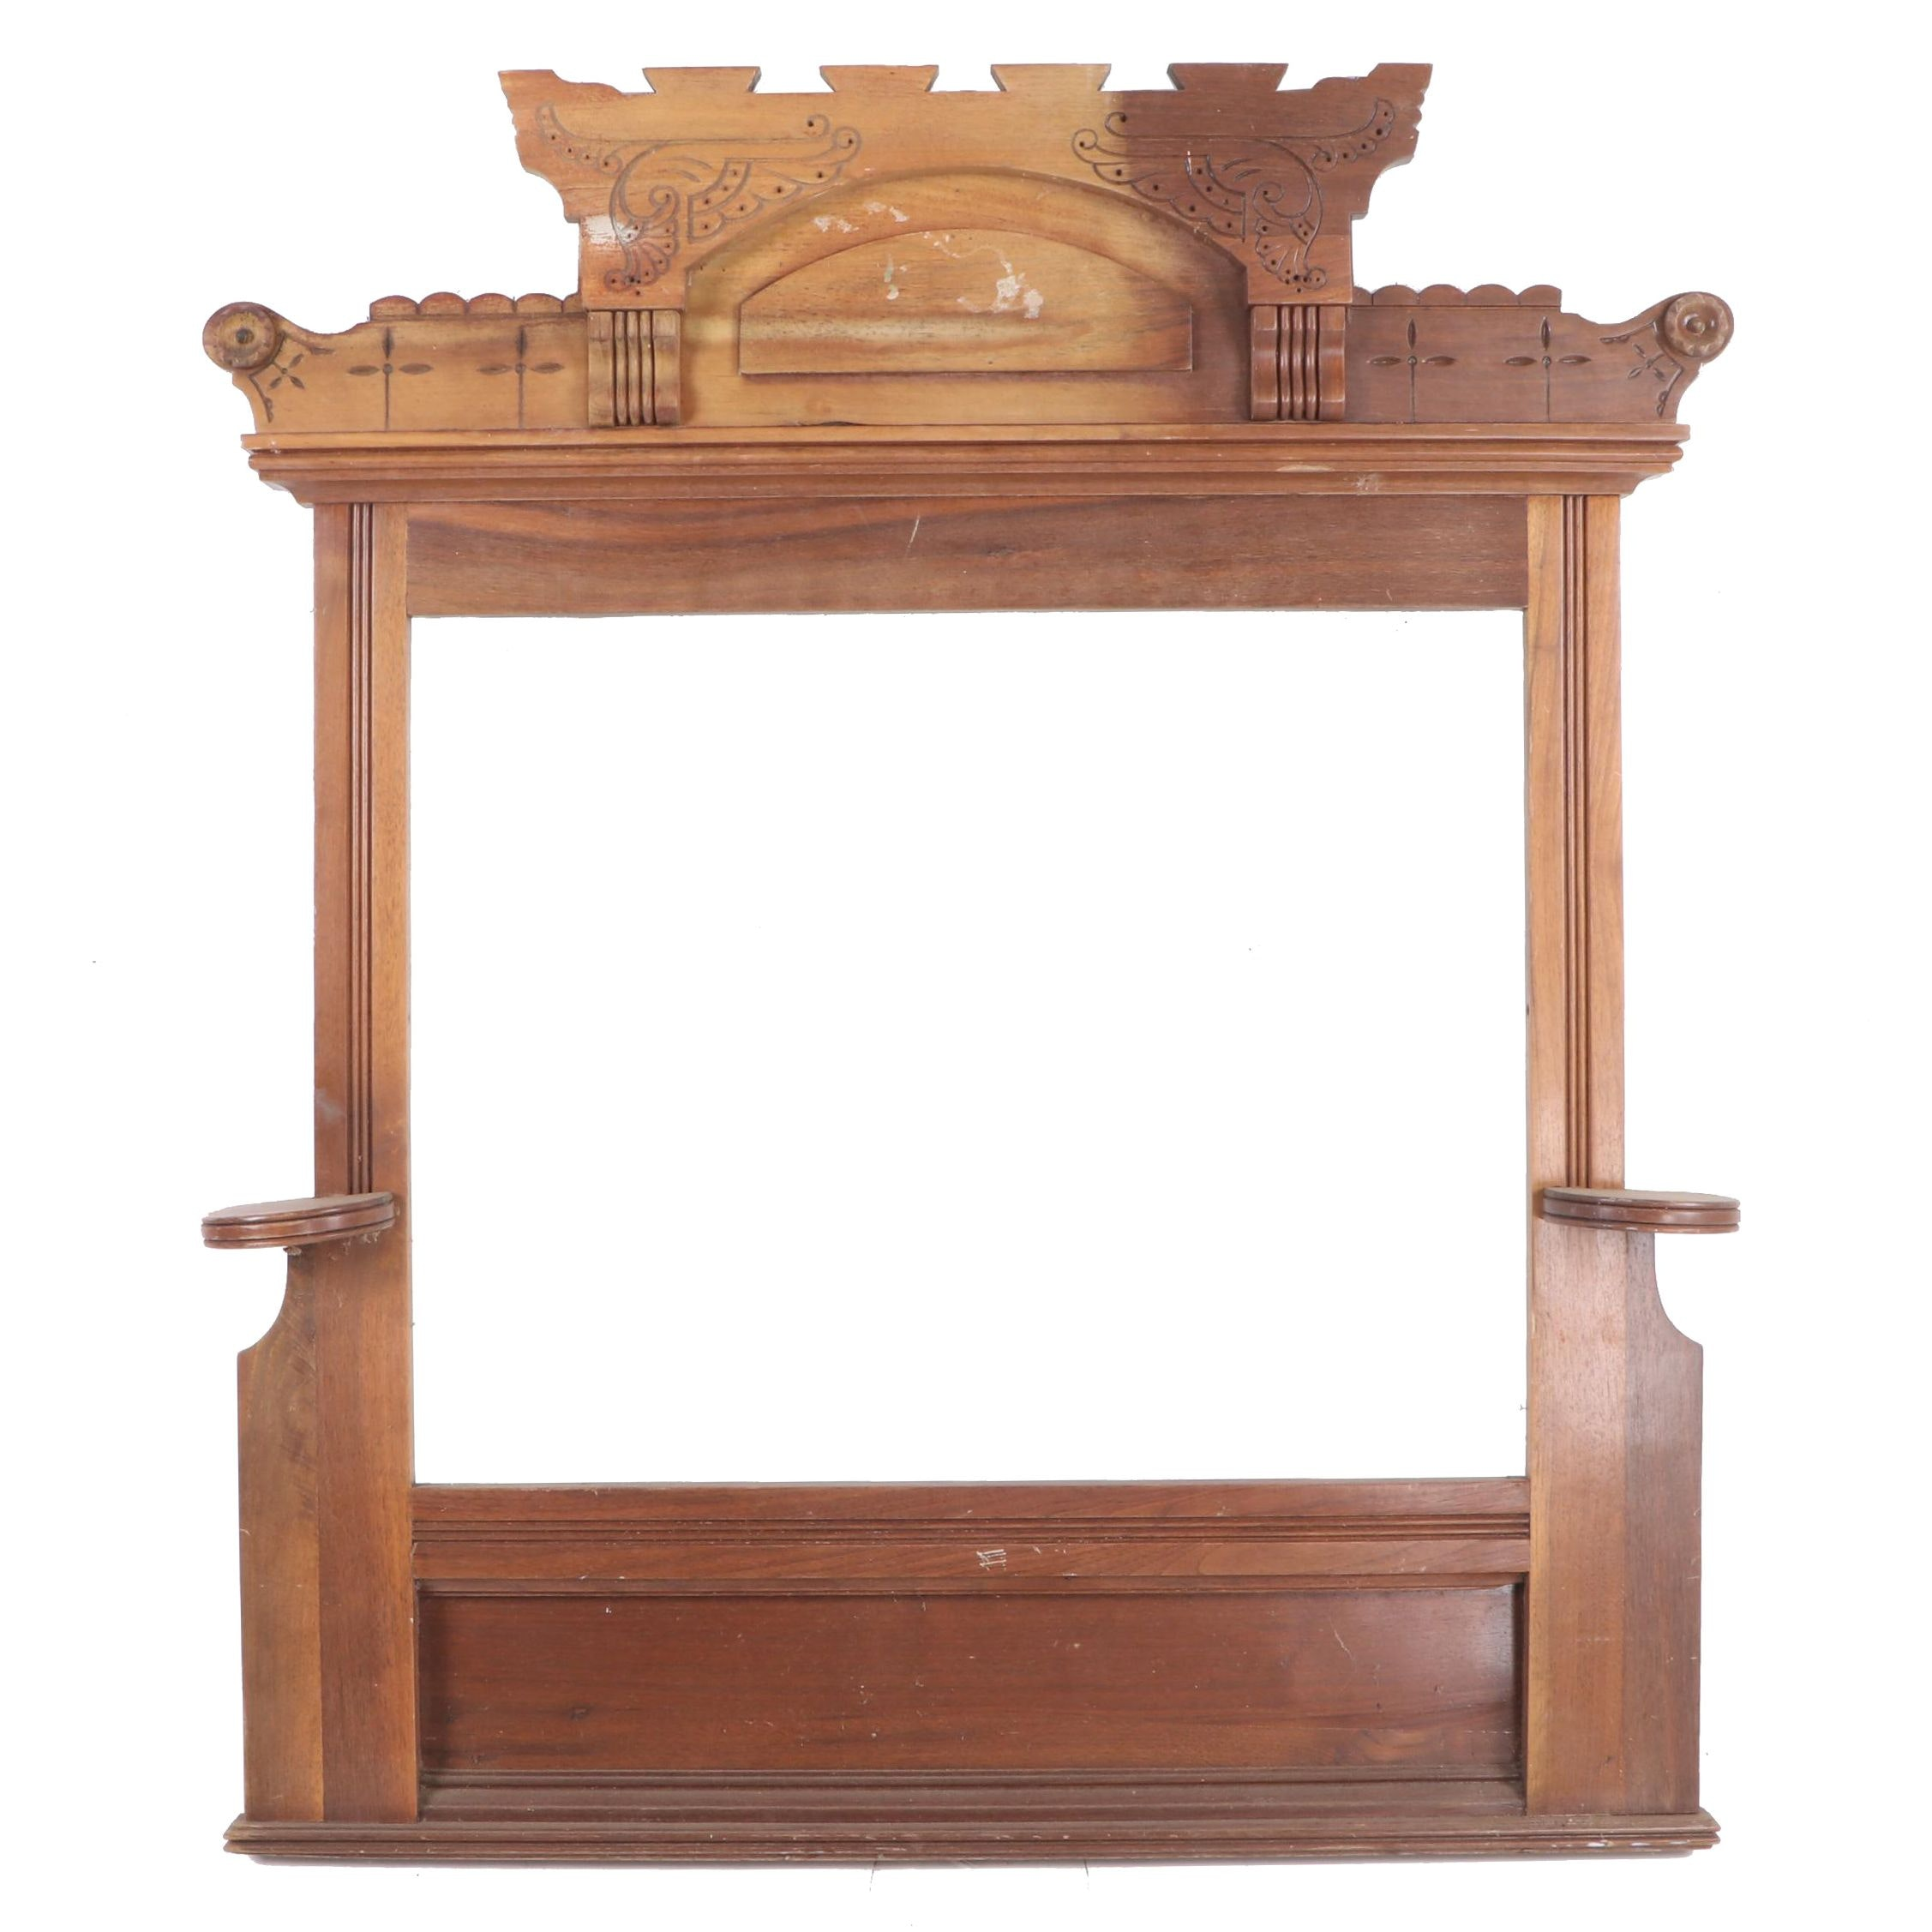 Victorian Carved Walnut Frame, Probably a Former Superstructure, Late 19th C.